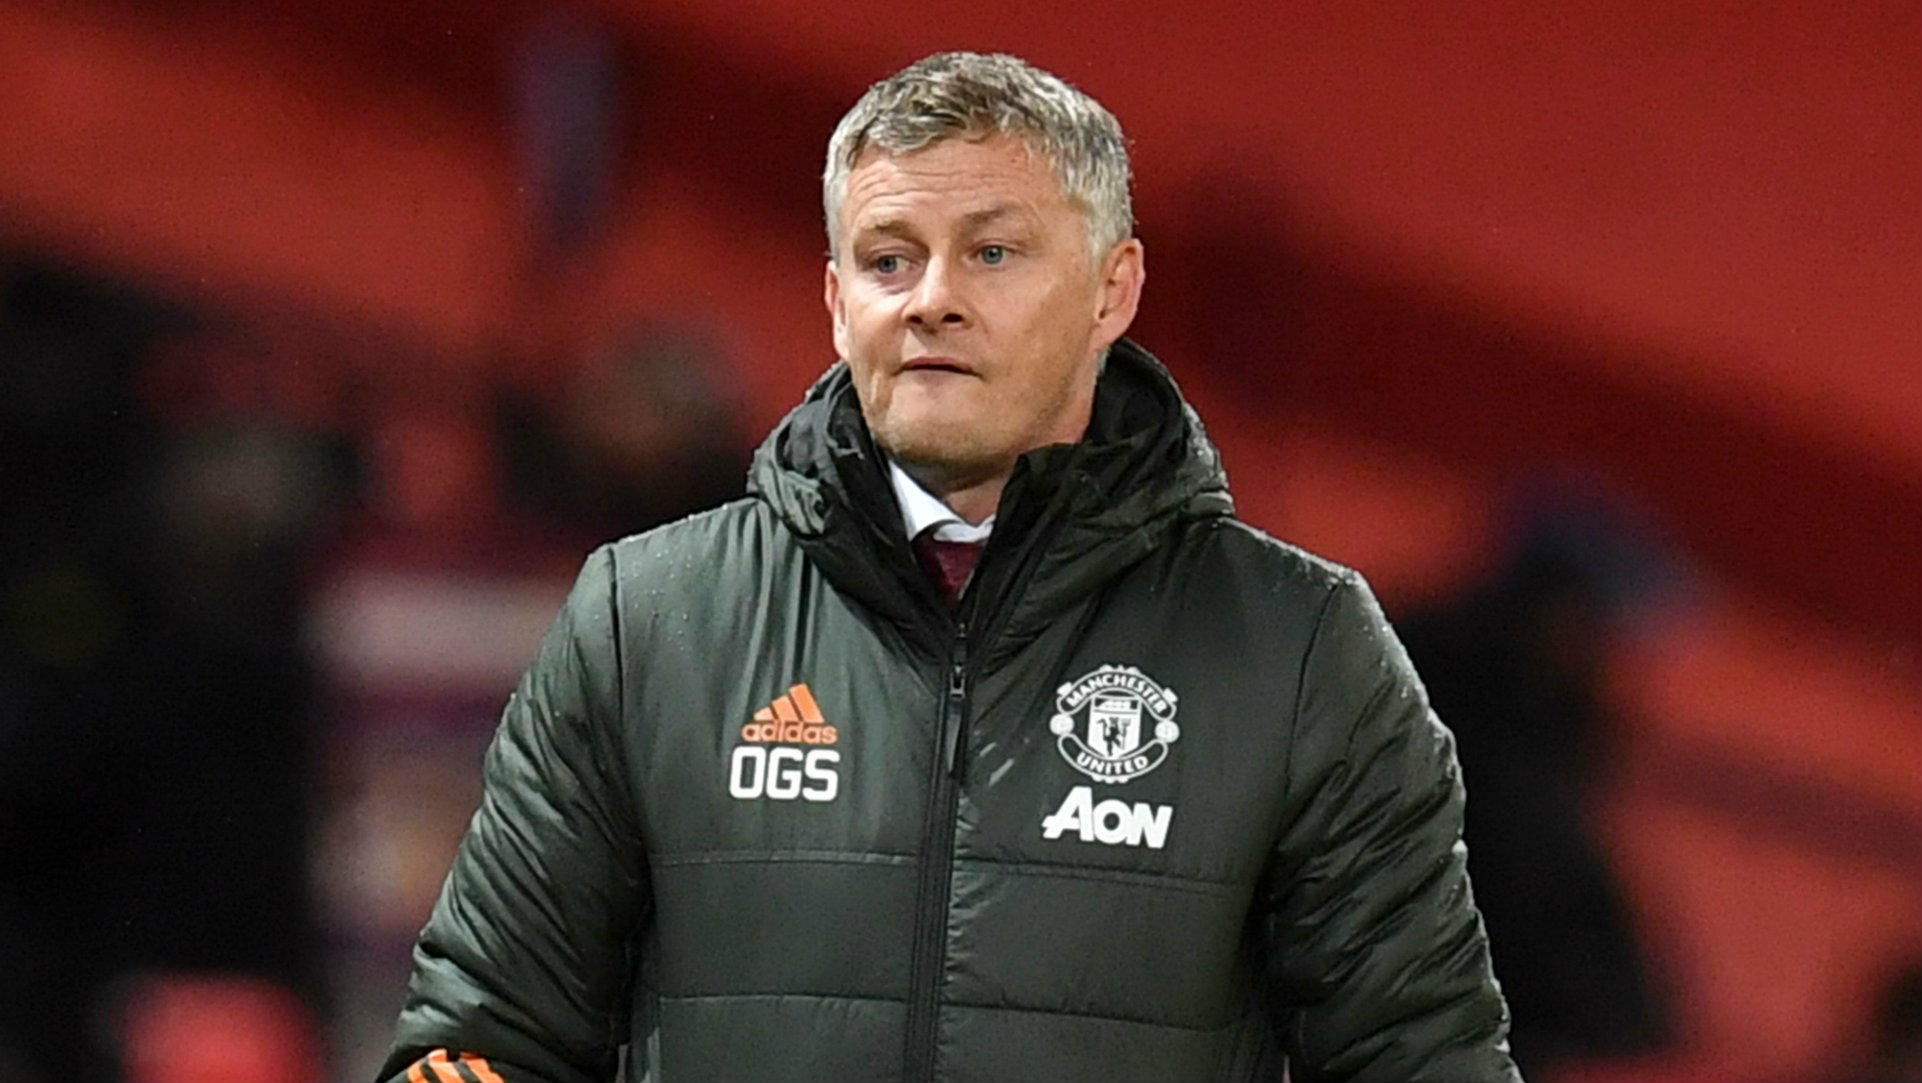 West Brom vs Man Utd: Solskjaer dares players who want to leave Old Trafford